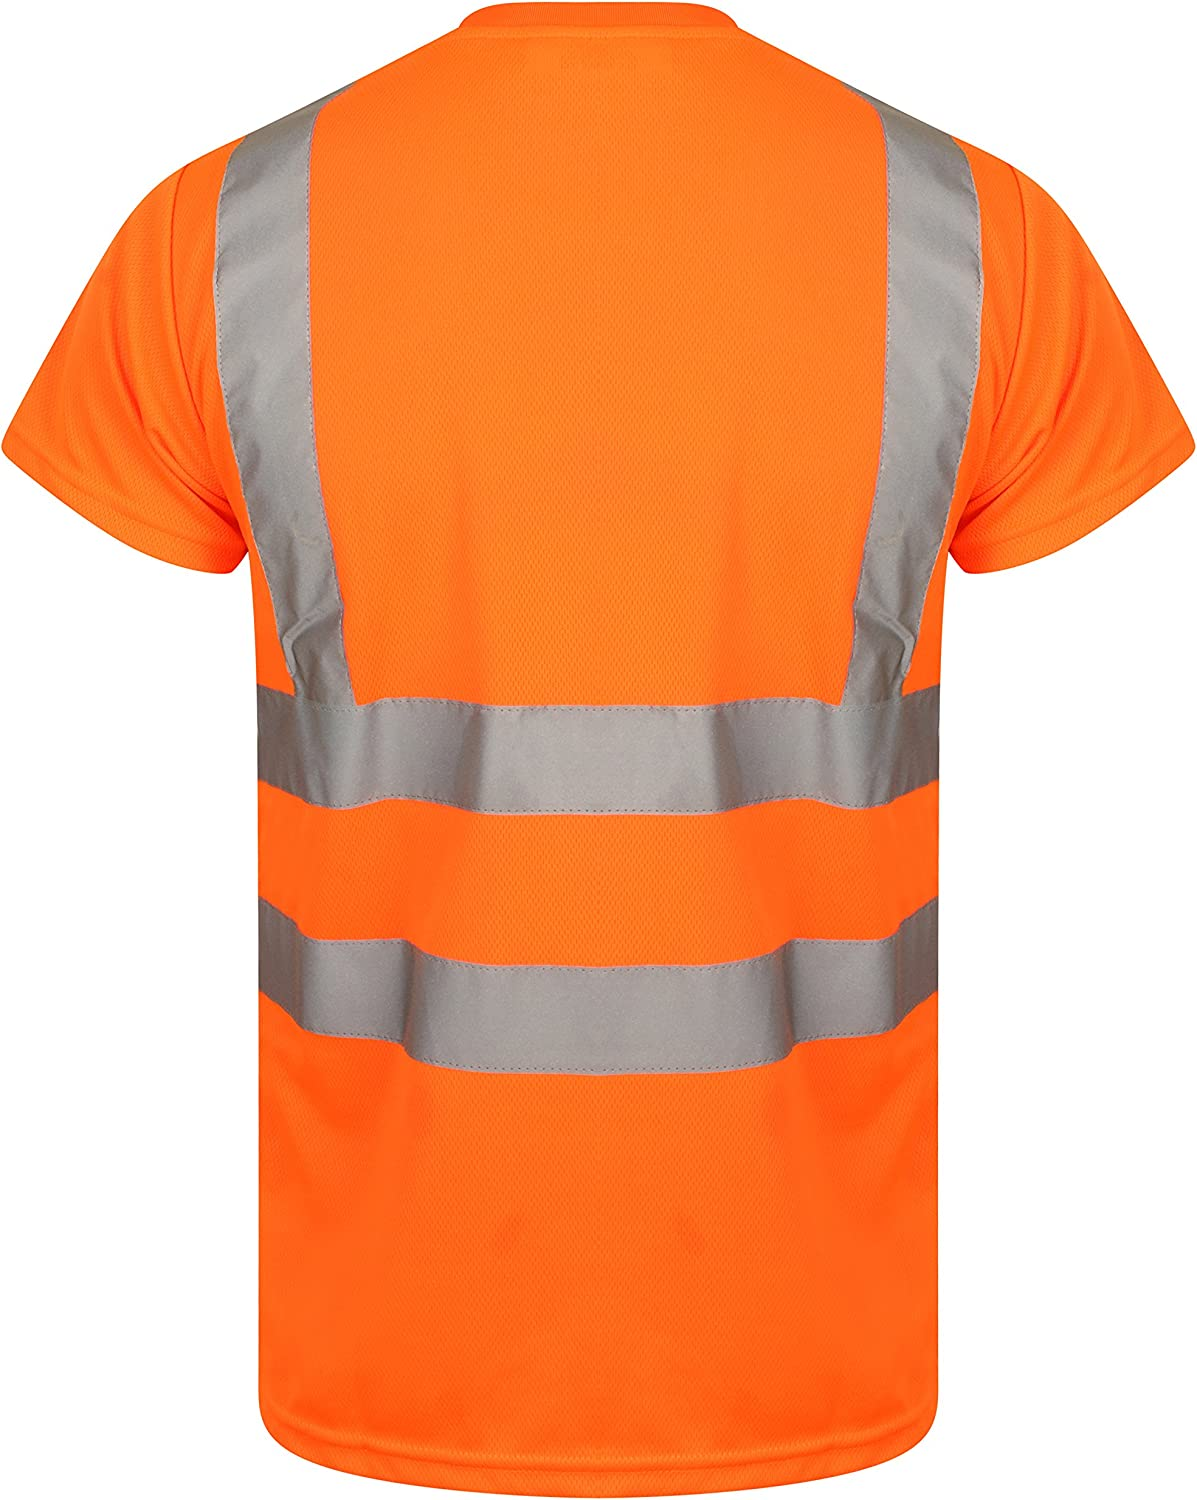 HuntaDeal Hi Viz VIS High Visibility T-Shirt Crew Neck Reflective Tape Safety Security Work Short Sleeve Tee Polo Breathable Lightweight Double Tape Workwear Top Plus Size Big Size Large EN ISO 20471